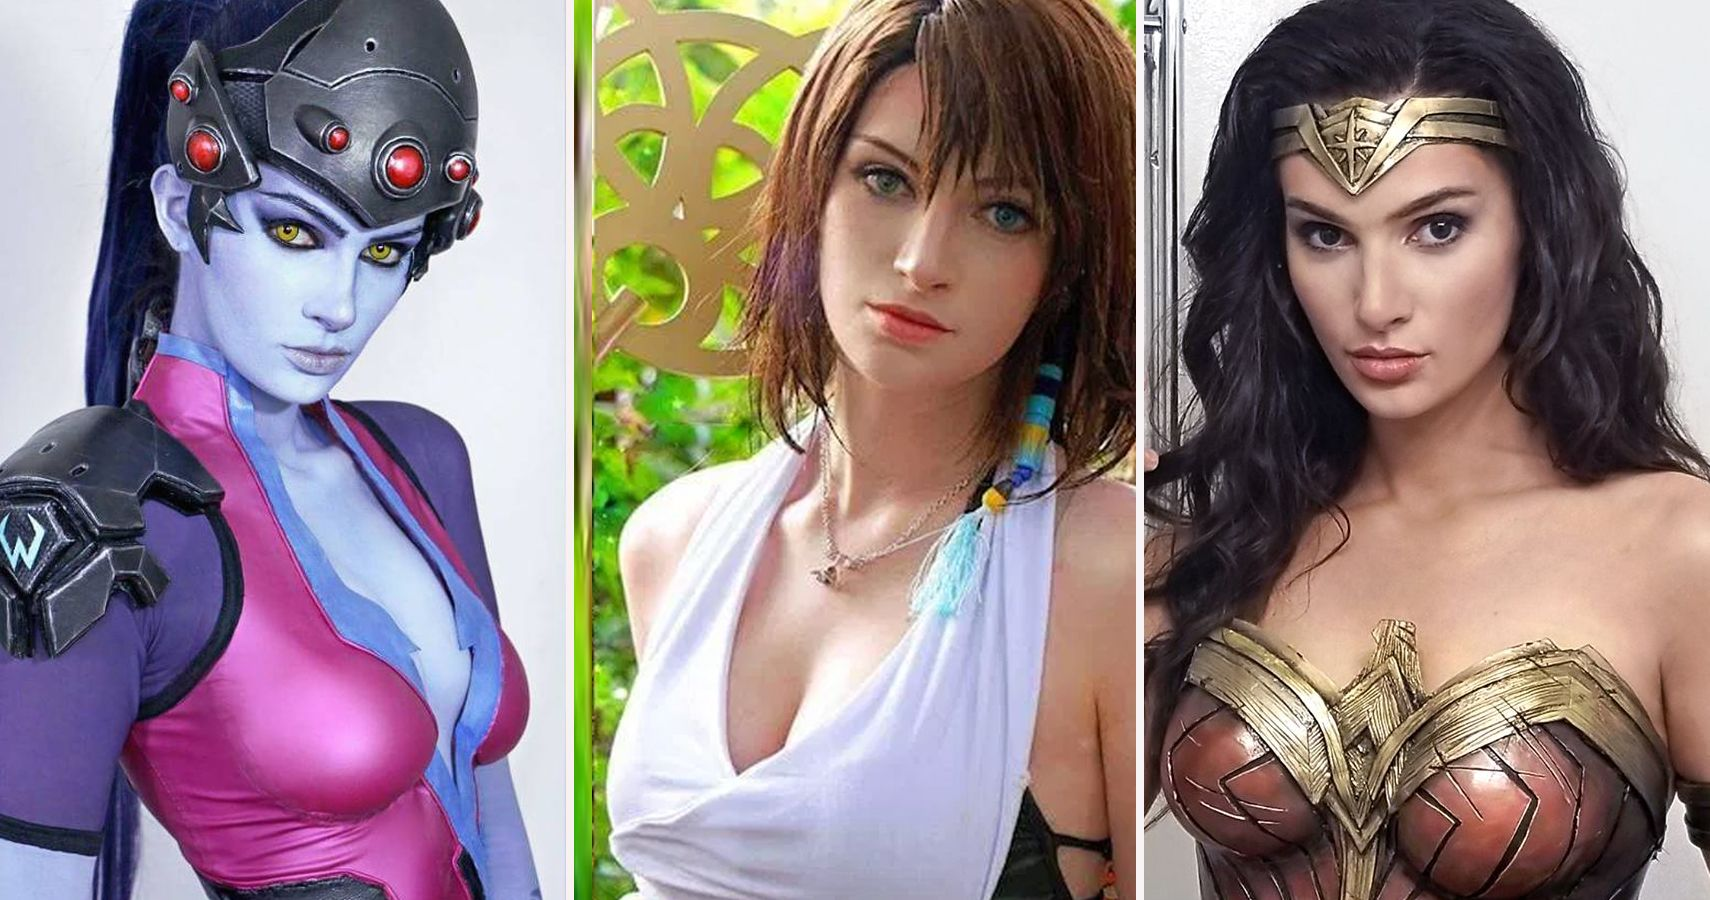 Alyson Tabbitha mind-blowing pics of alyson tabbitha doing video game cosplay